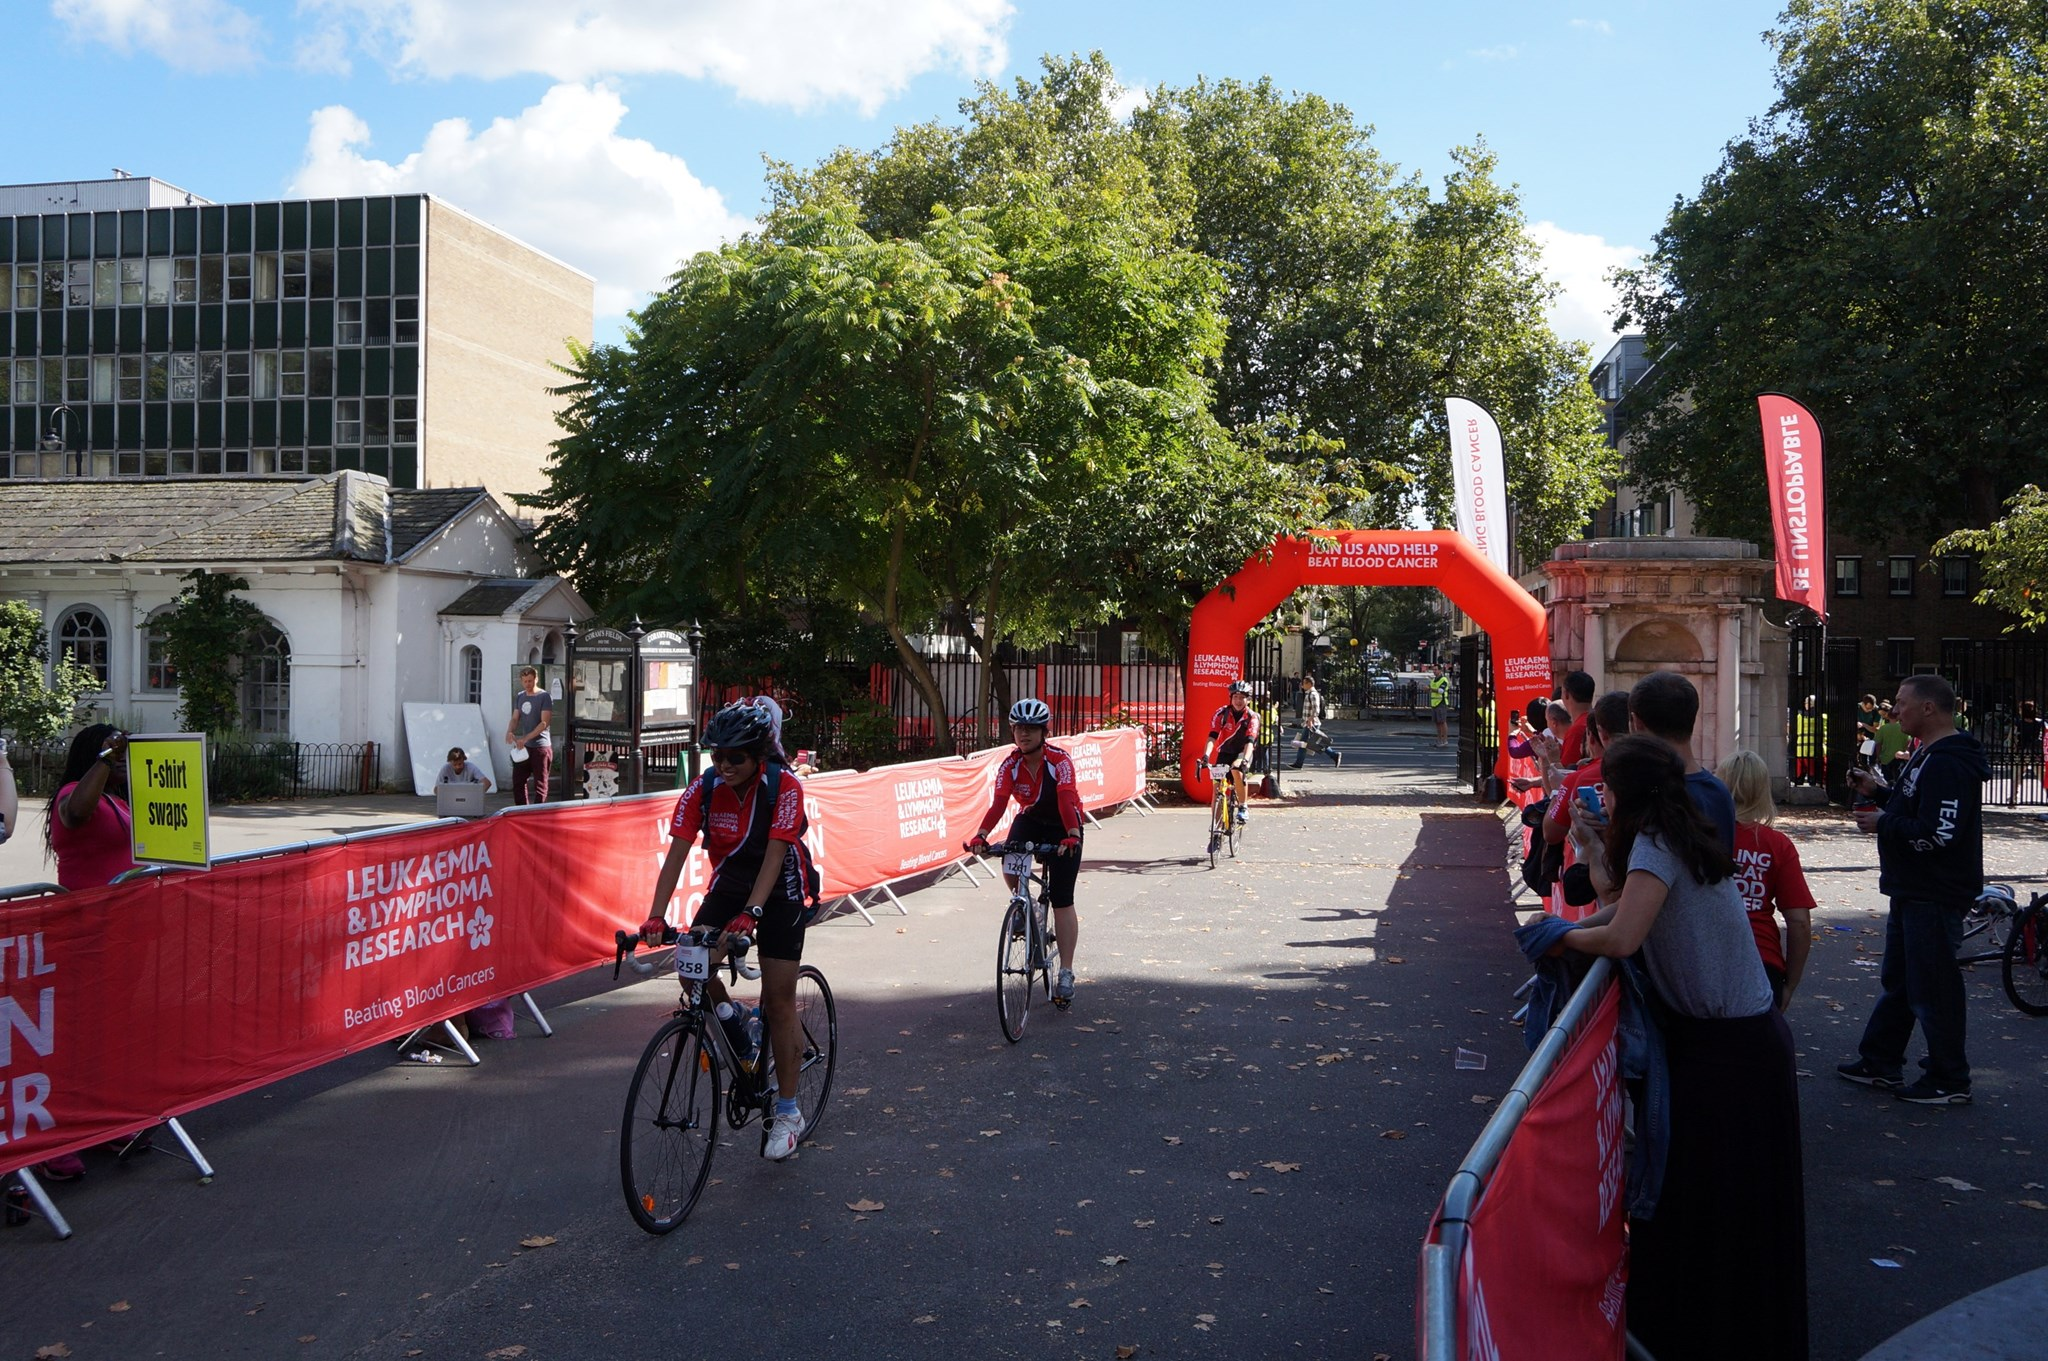 Finish point at London Coram's Fields